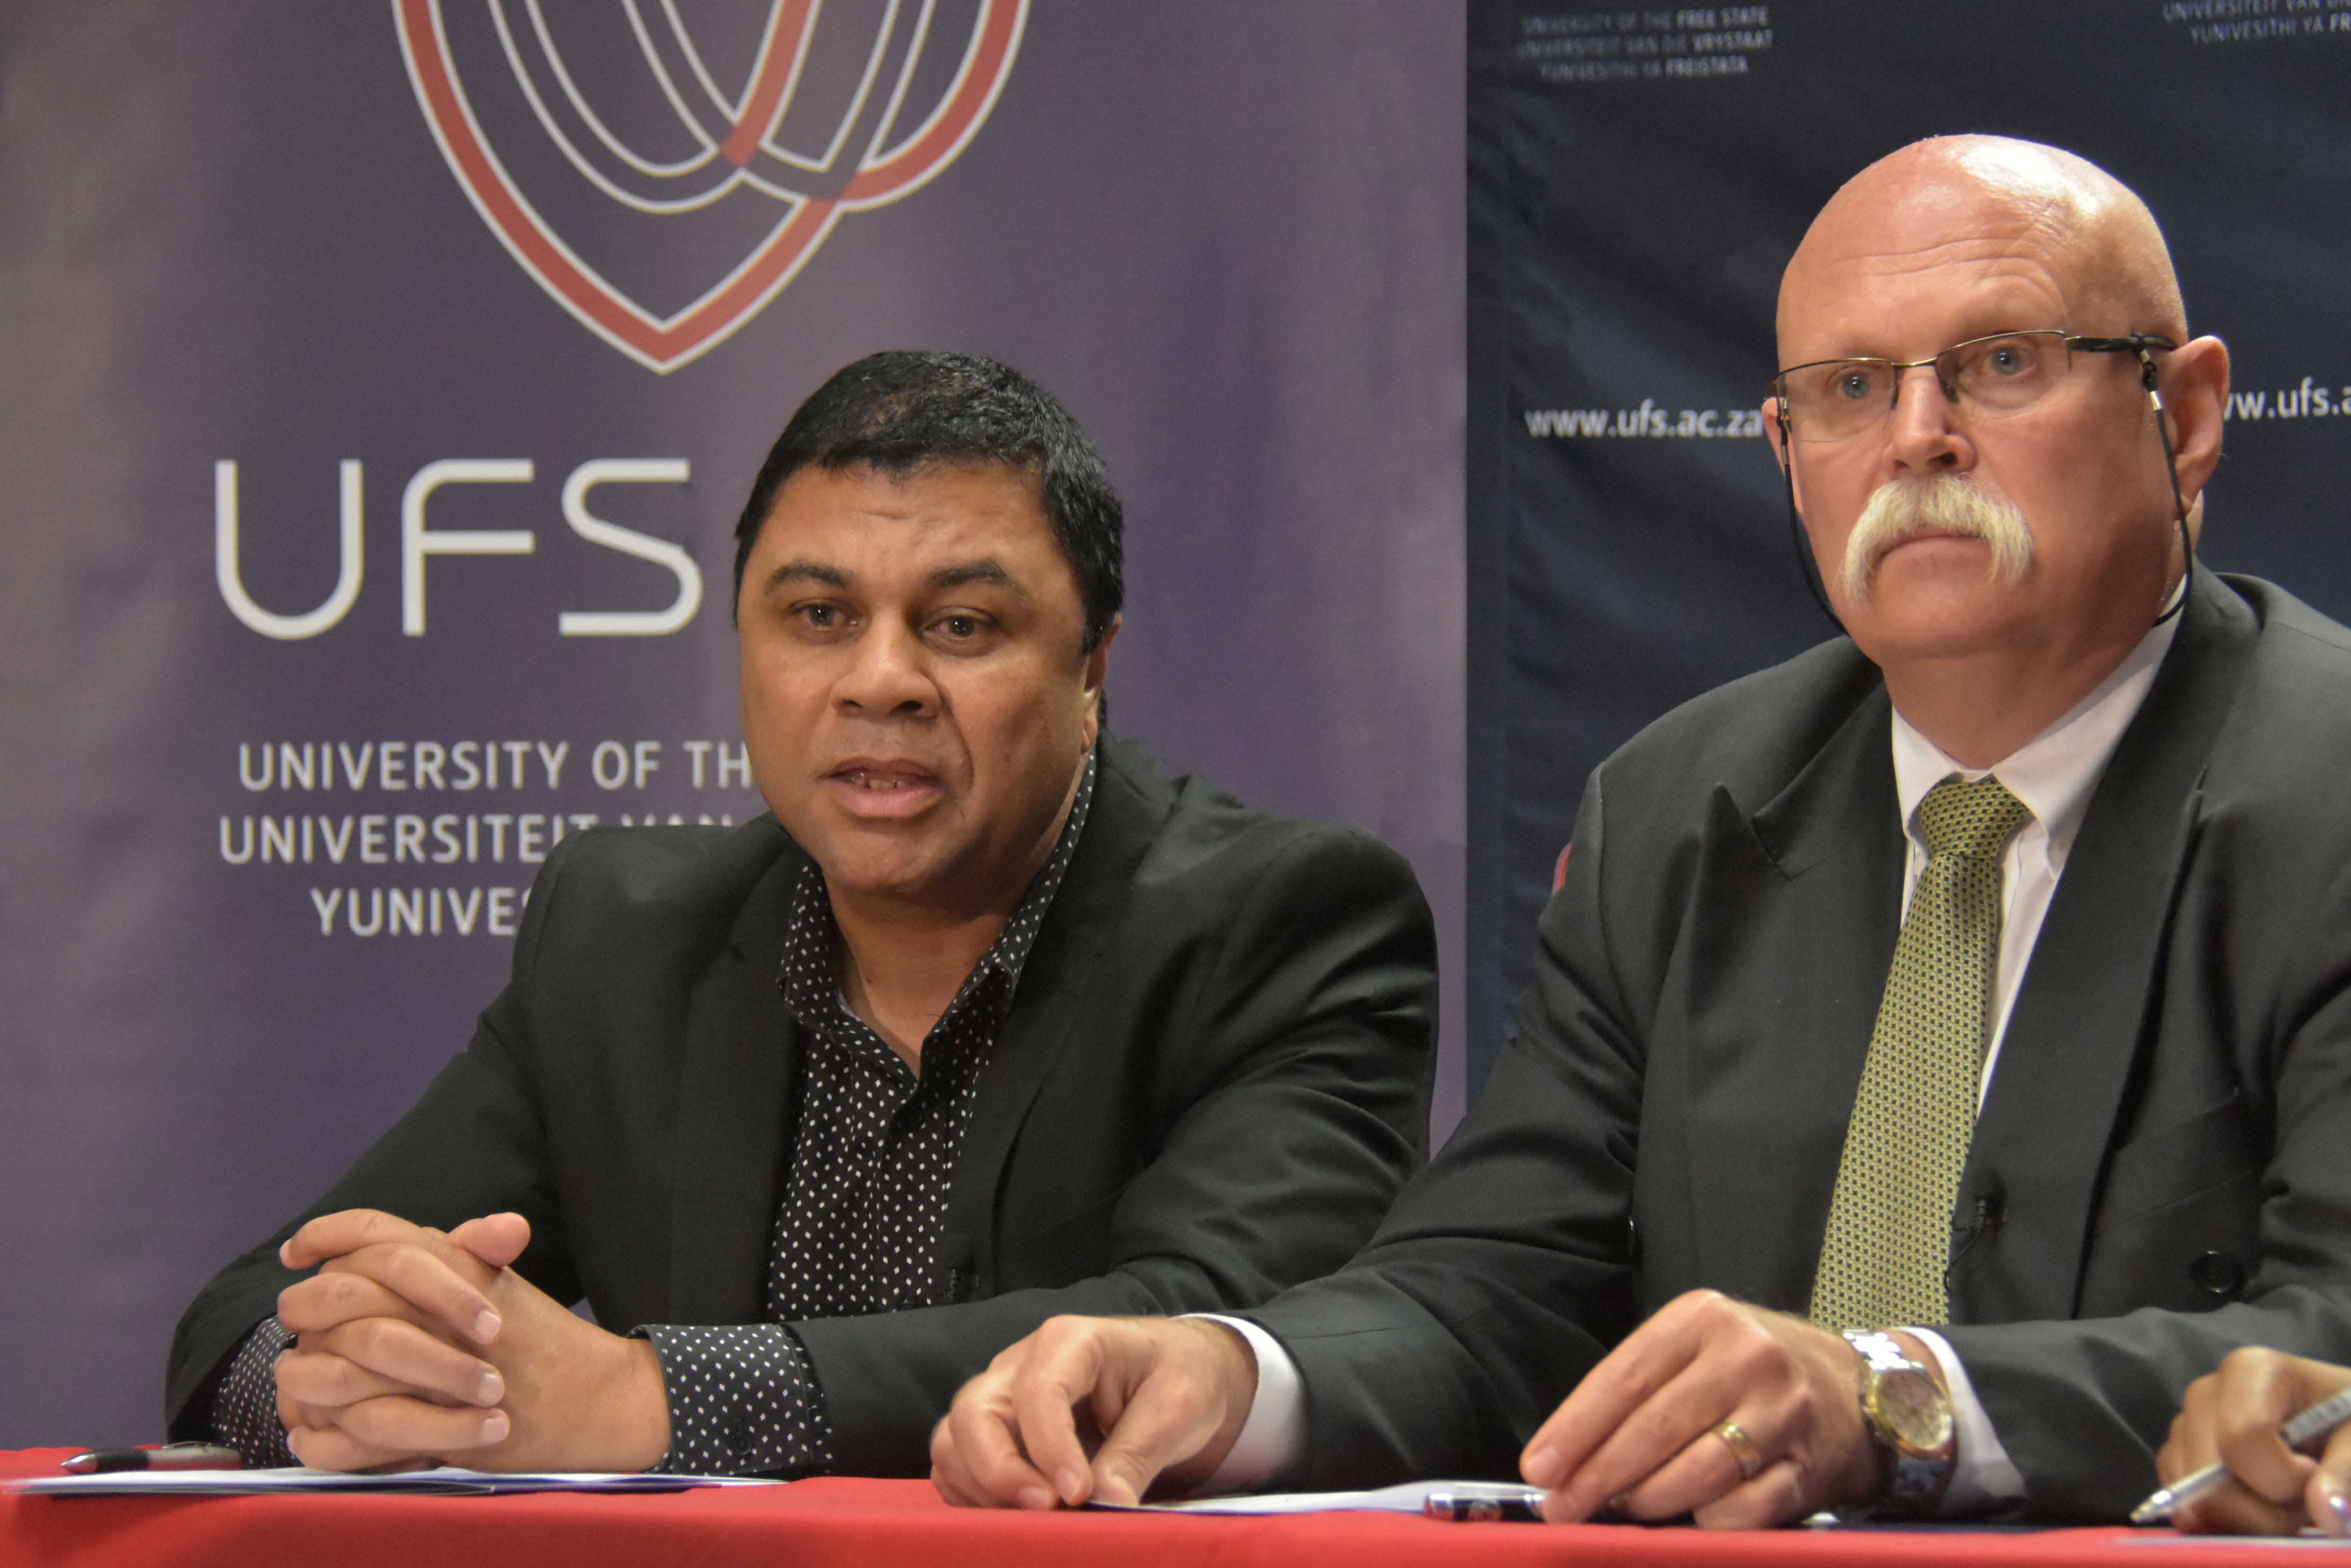 Prof Francis Petersen (left), UFS Rector and Vice-Chancellor; and Mr Willem Louw, Chairperson of the UFS Council.